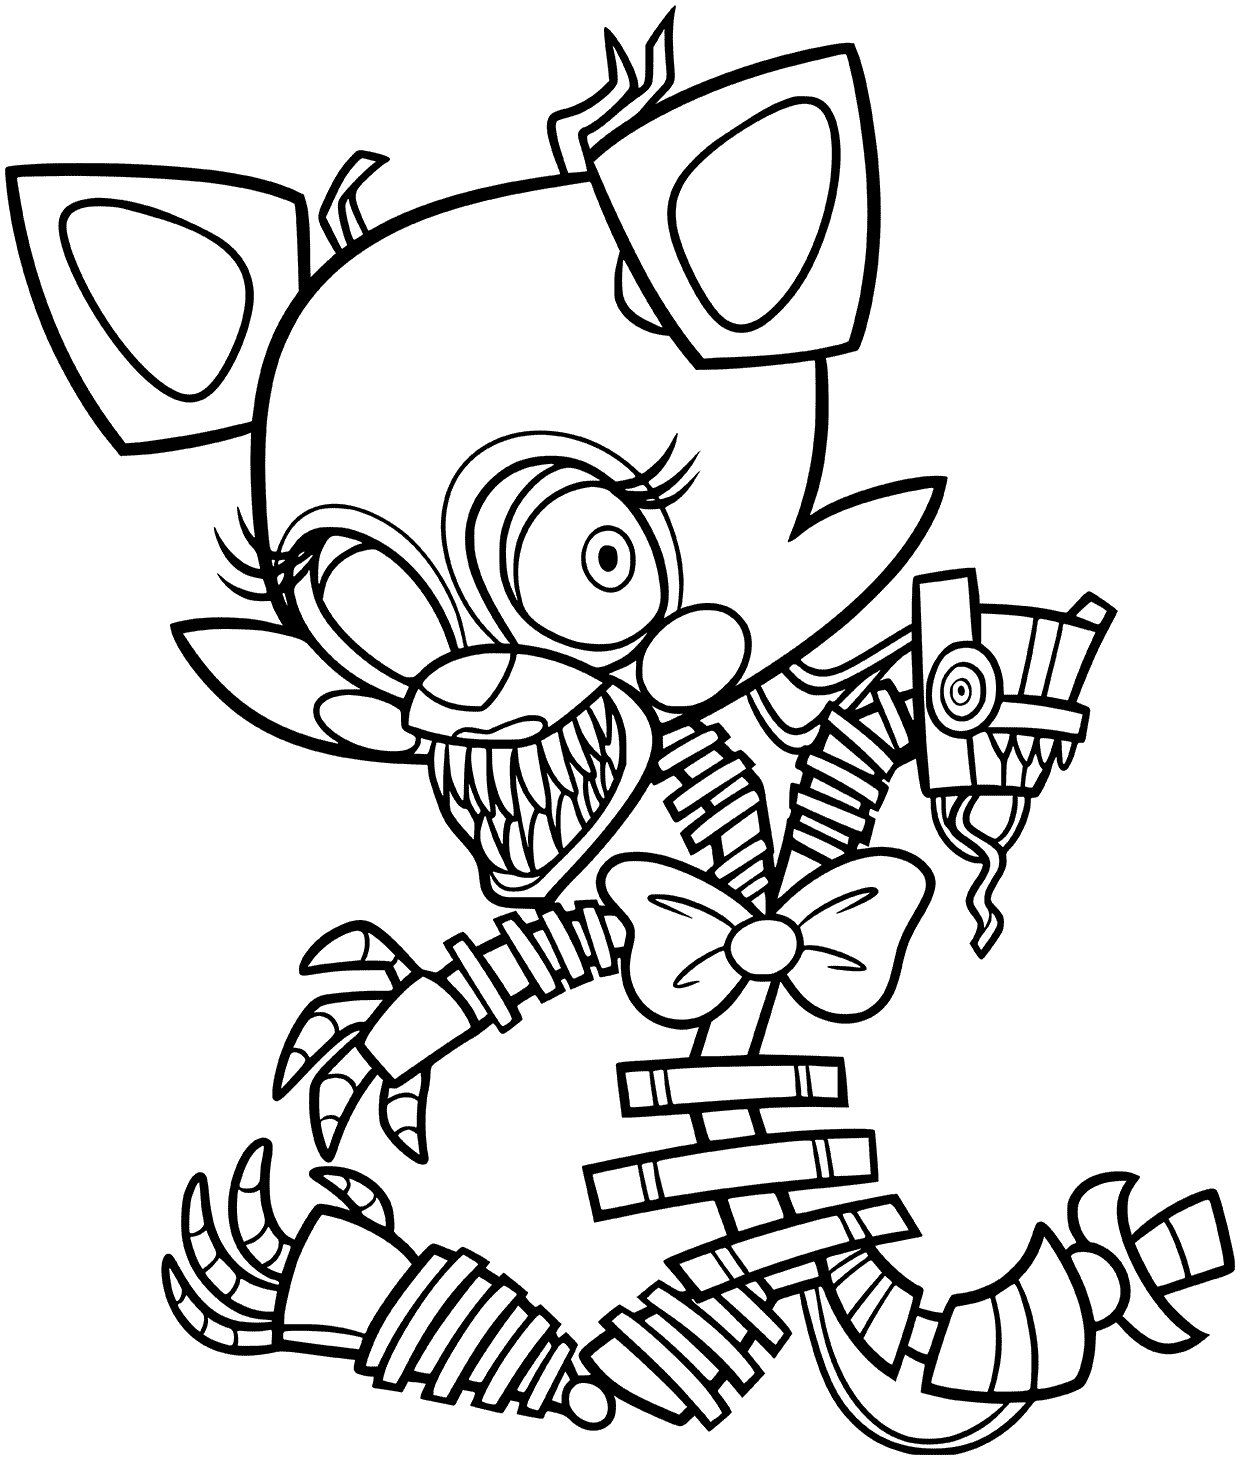 Golden Freddy Coloring Pages At Getcolorings